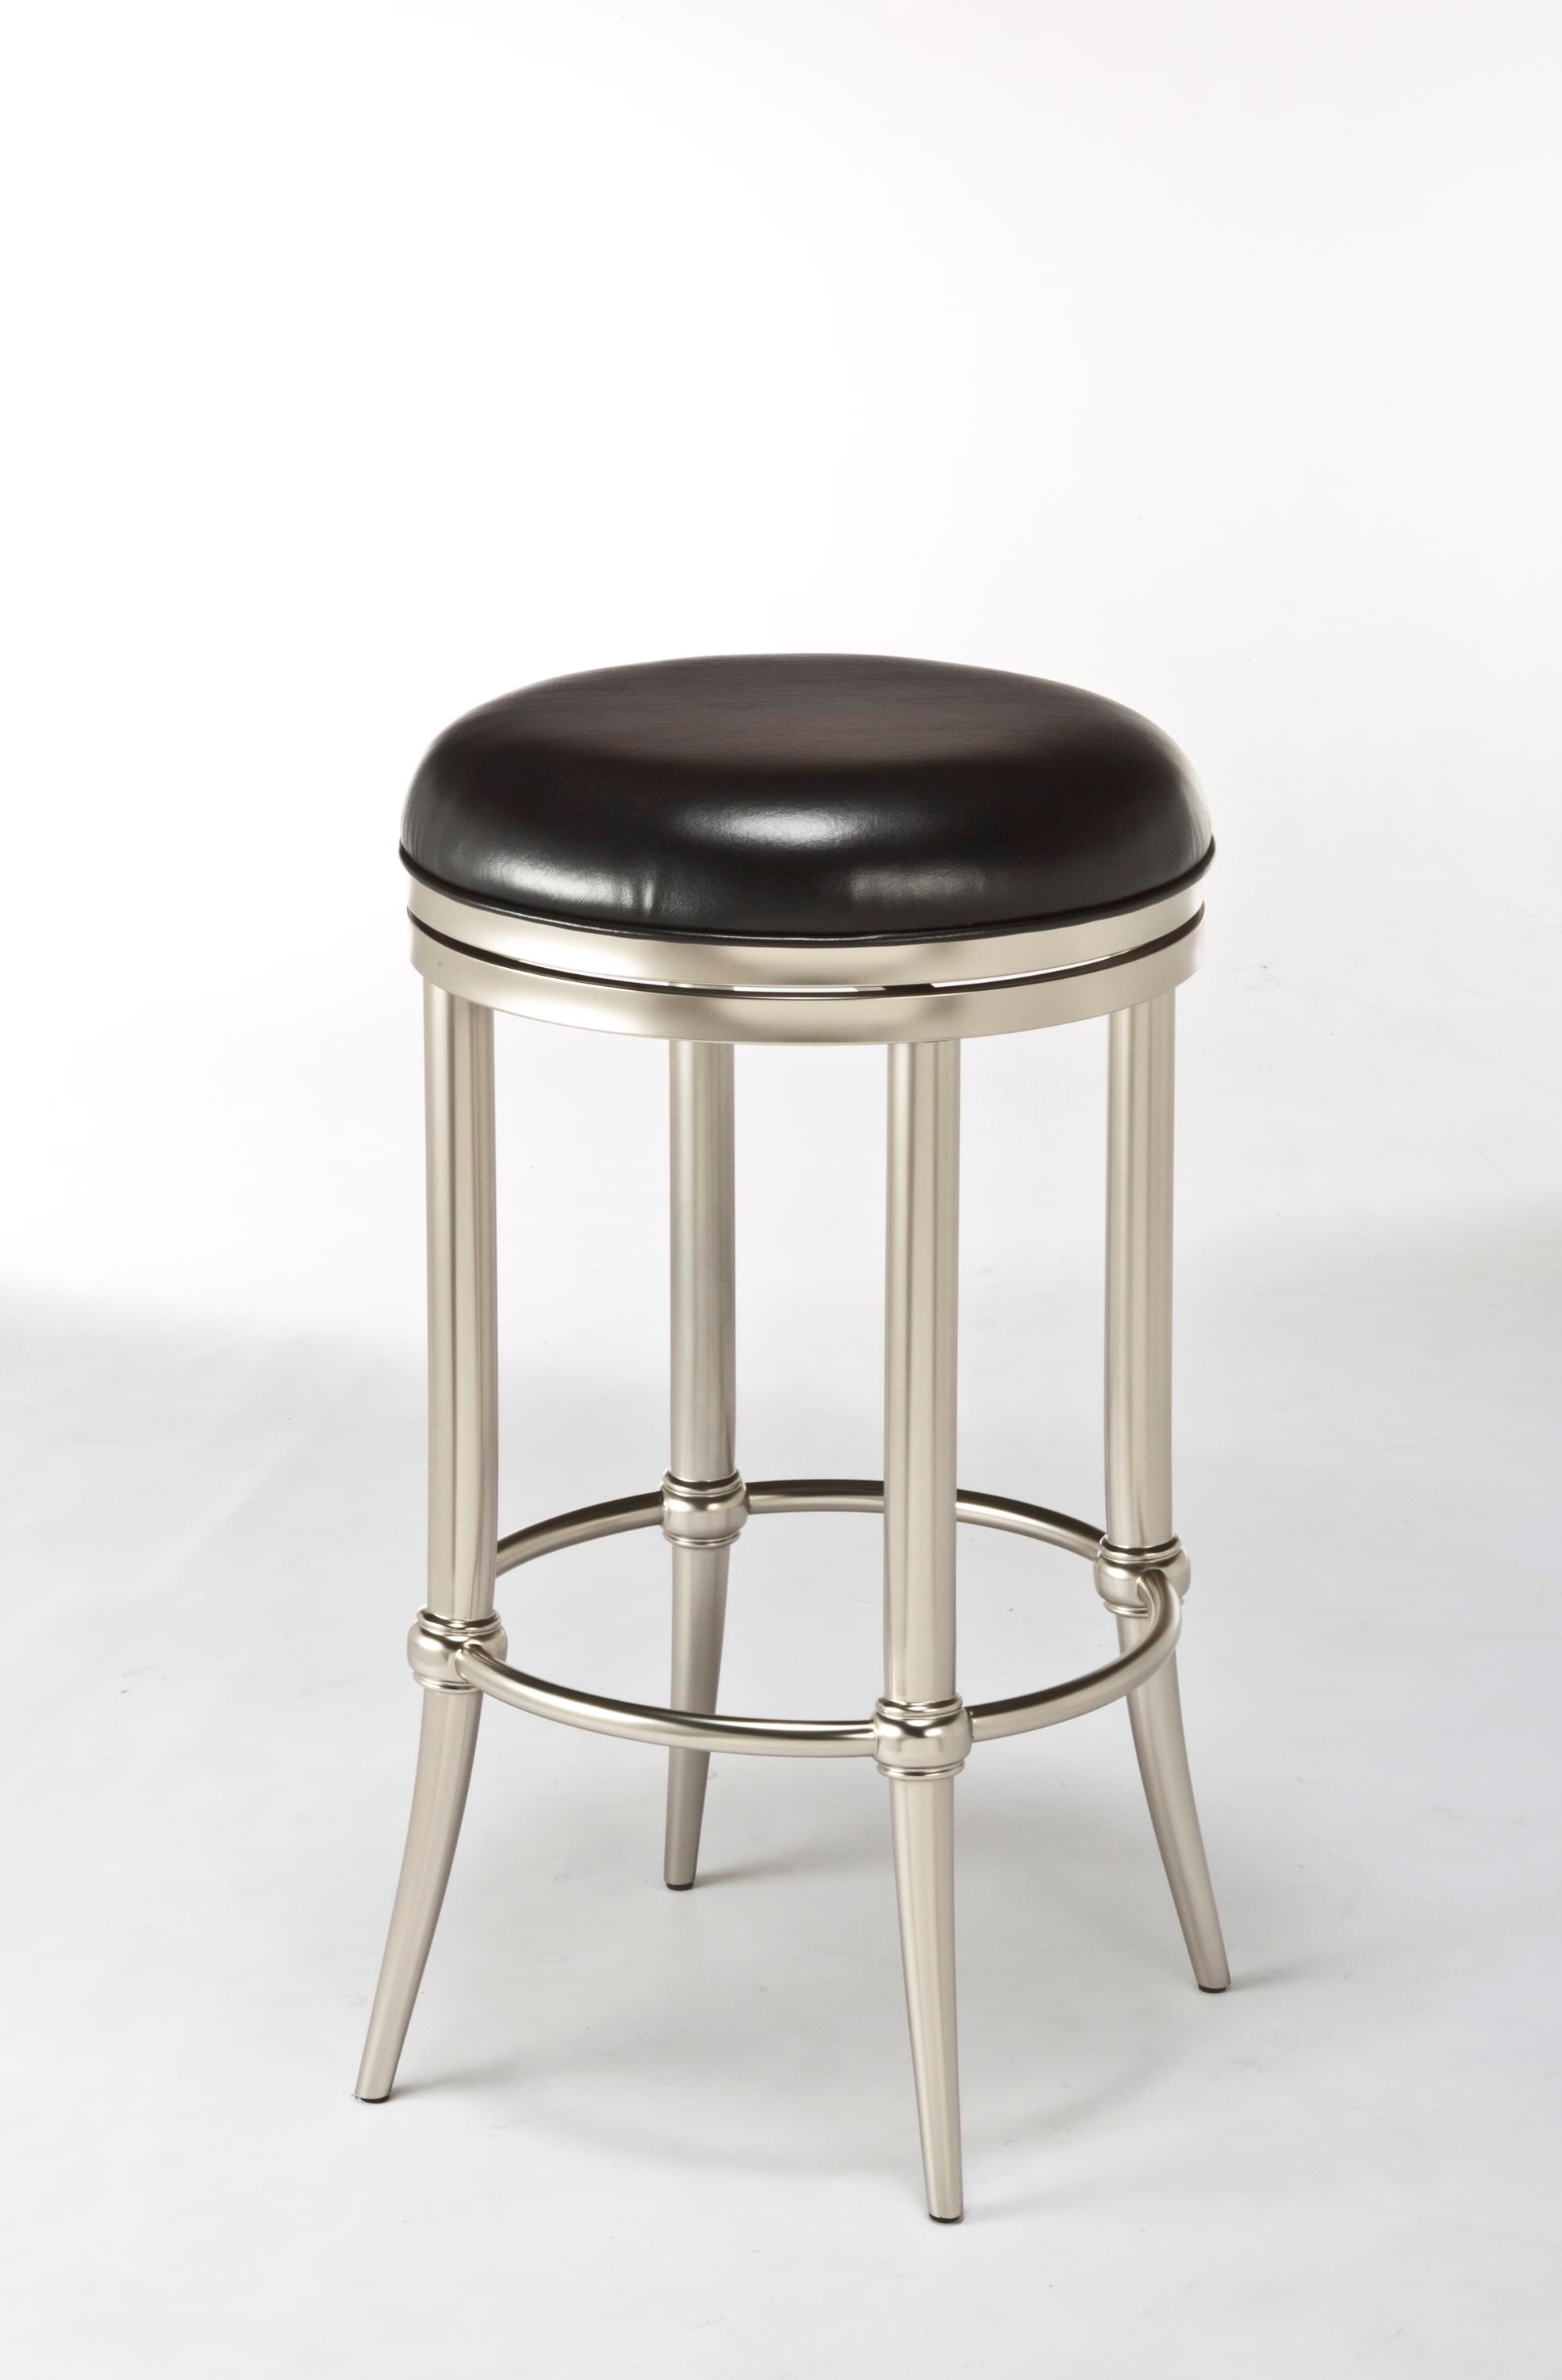 hillsdale bar stools. Hillsdale Backless Bar Stools Cadman Counter Stool With Tapered Feet N